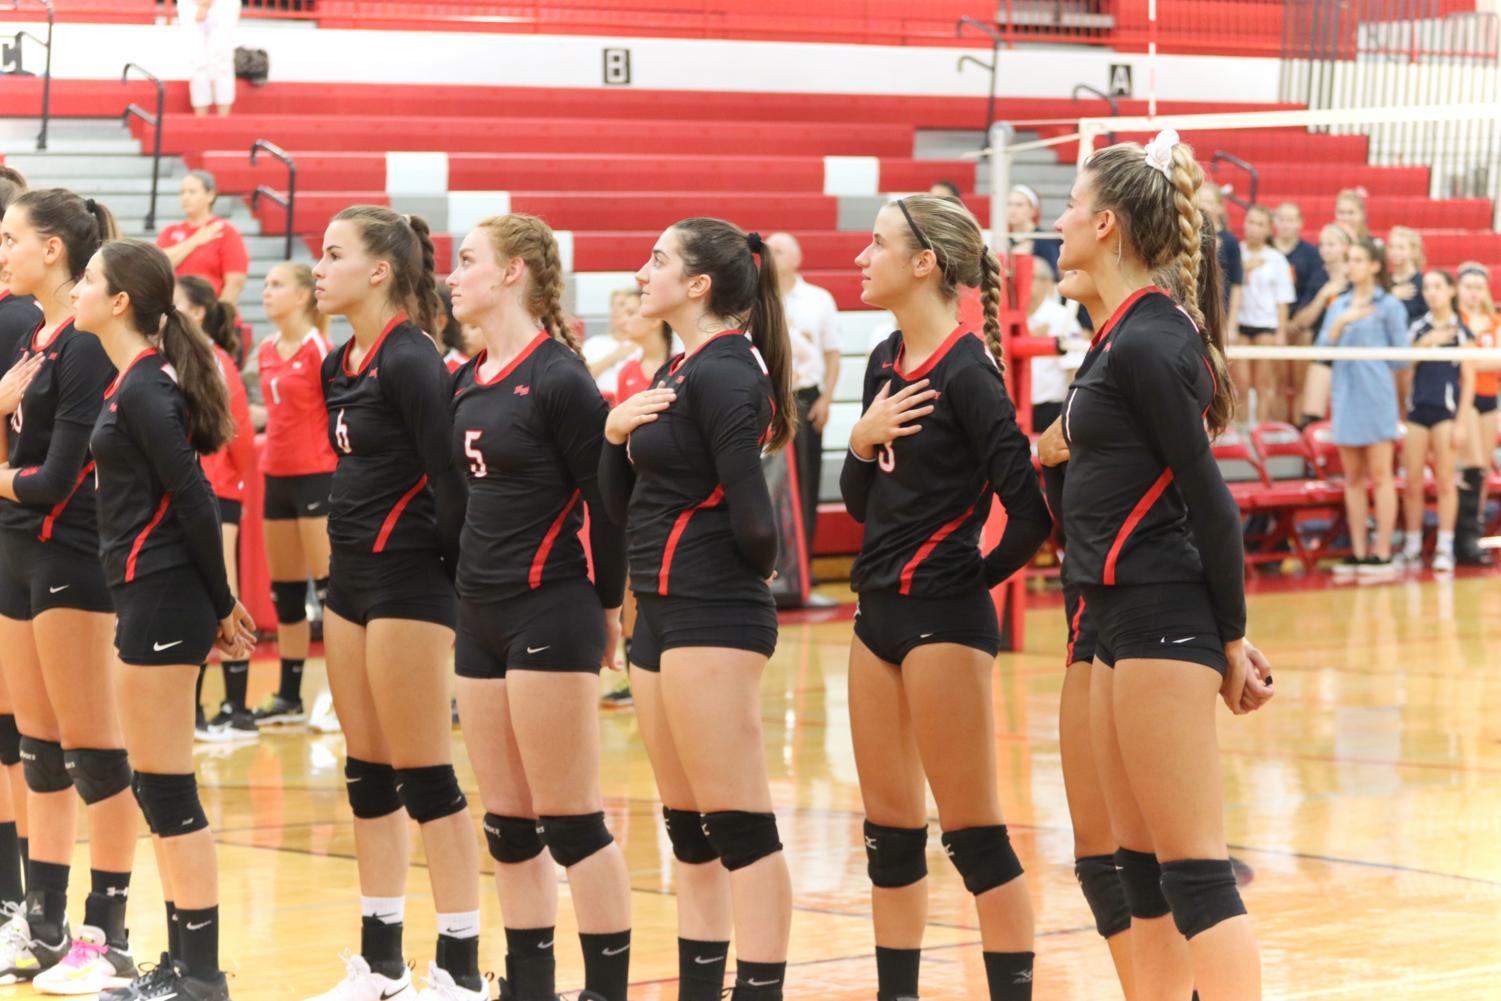 The Niles West Girls Volleyball team stands for the national anthem.